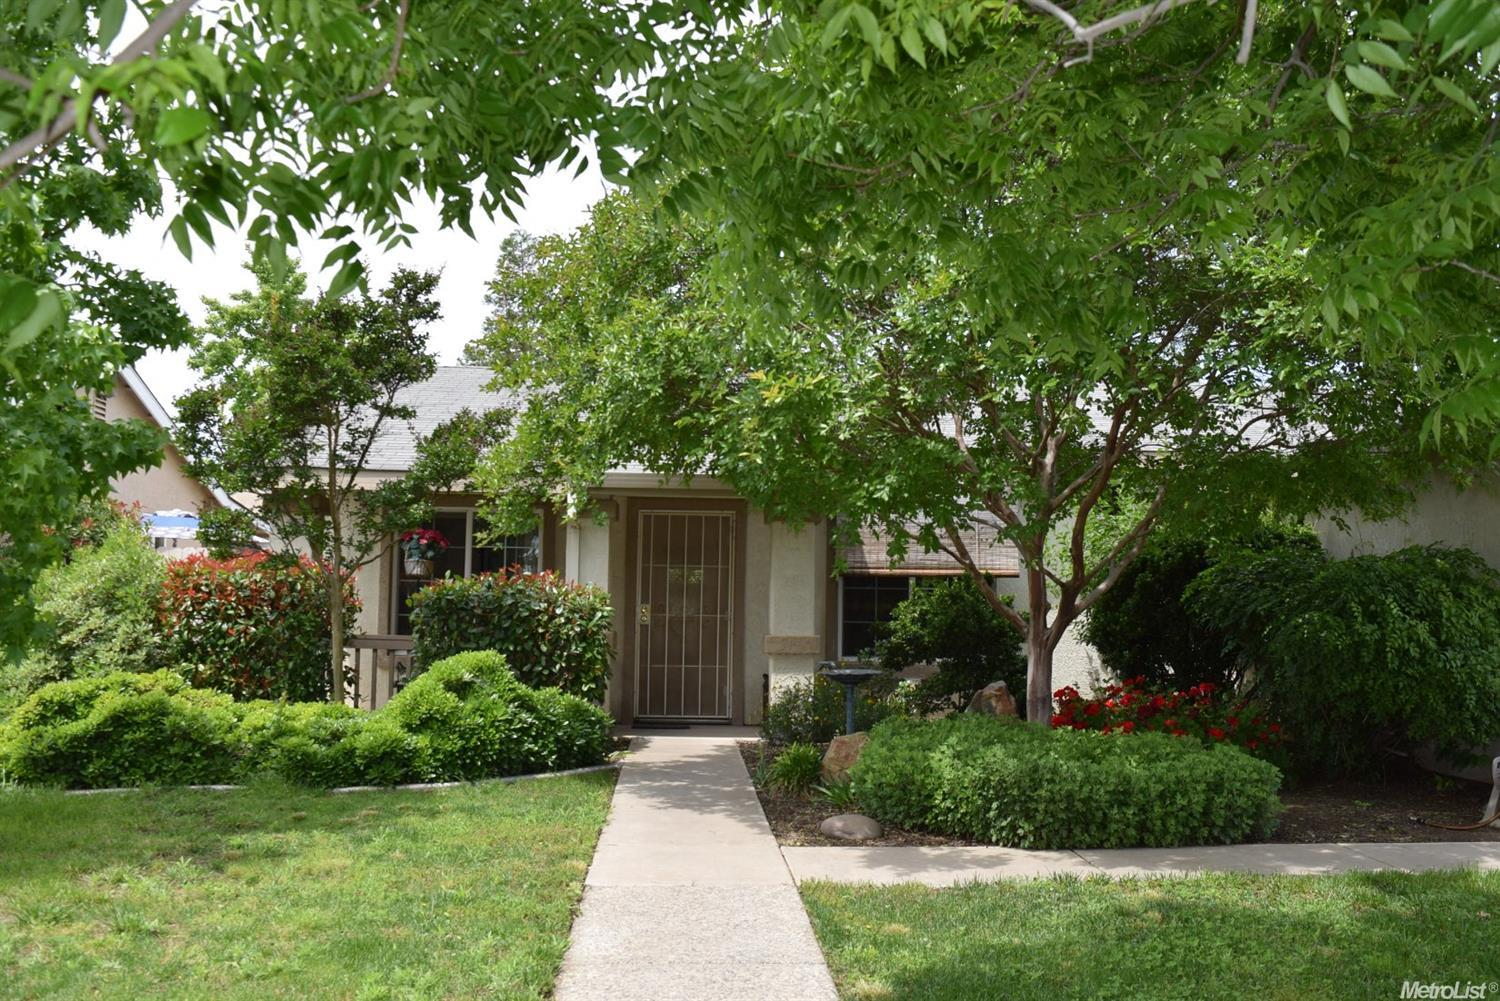 717 Green Sands Ave, Atwater, CA